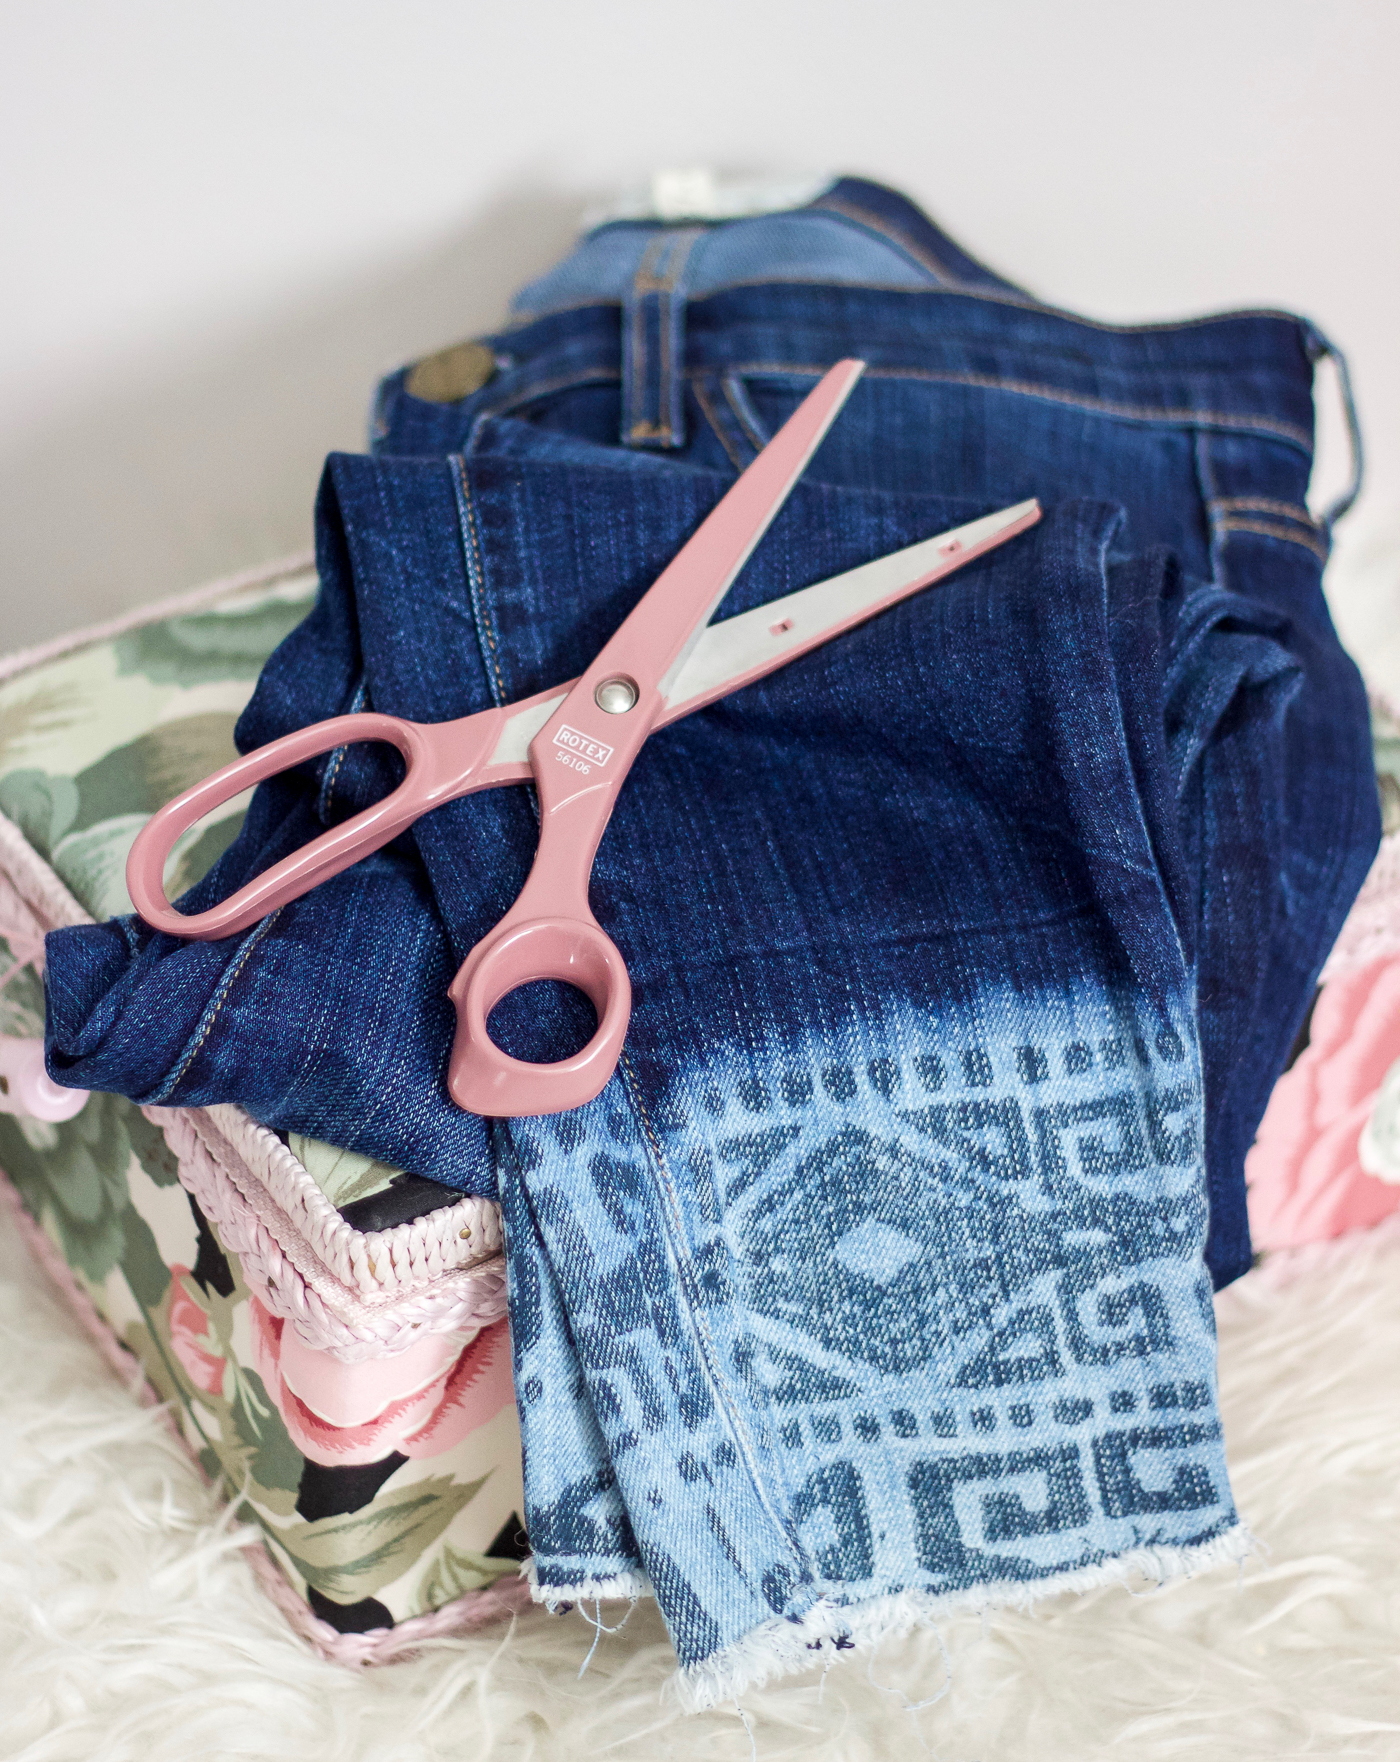 One of the season's hottest trends in denim is the step-hem jean, so here's a tutorial for how to DIY them yourself